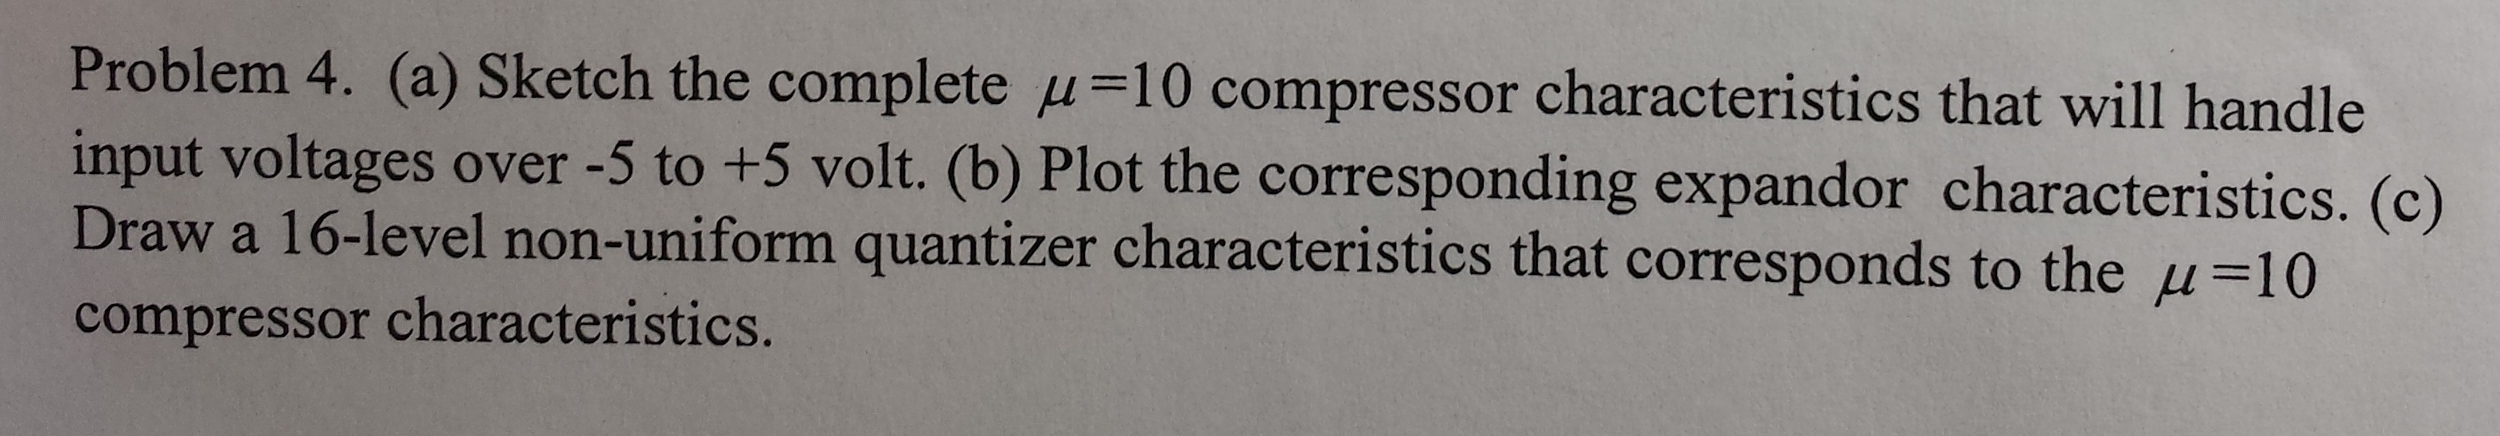 Sketch the complete mu = 10 compressor characteris